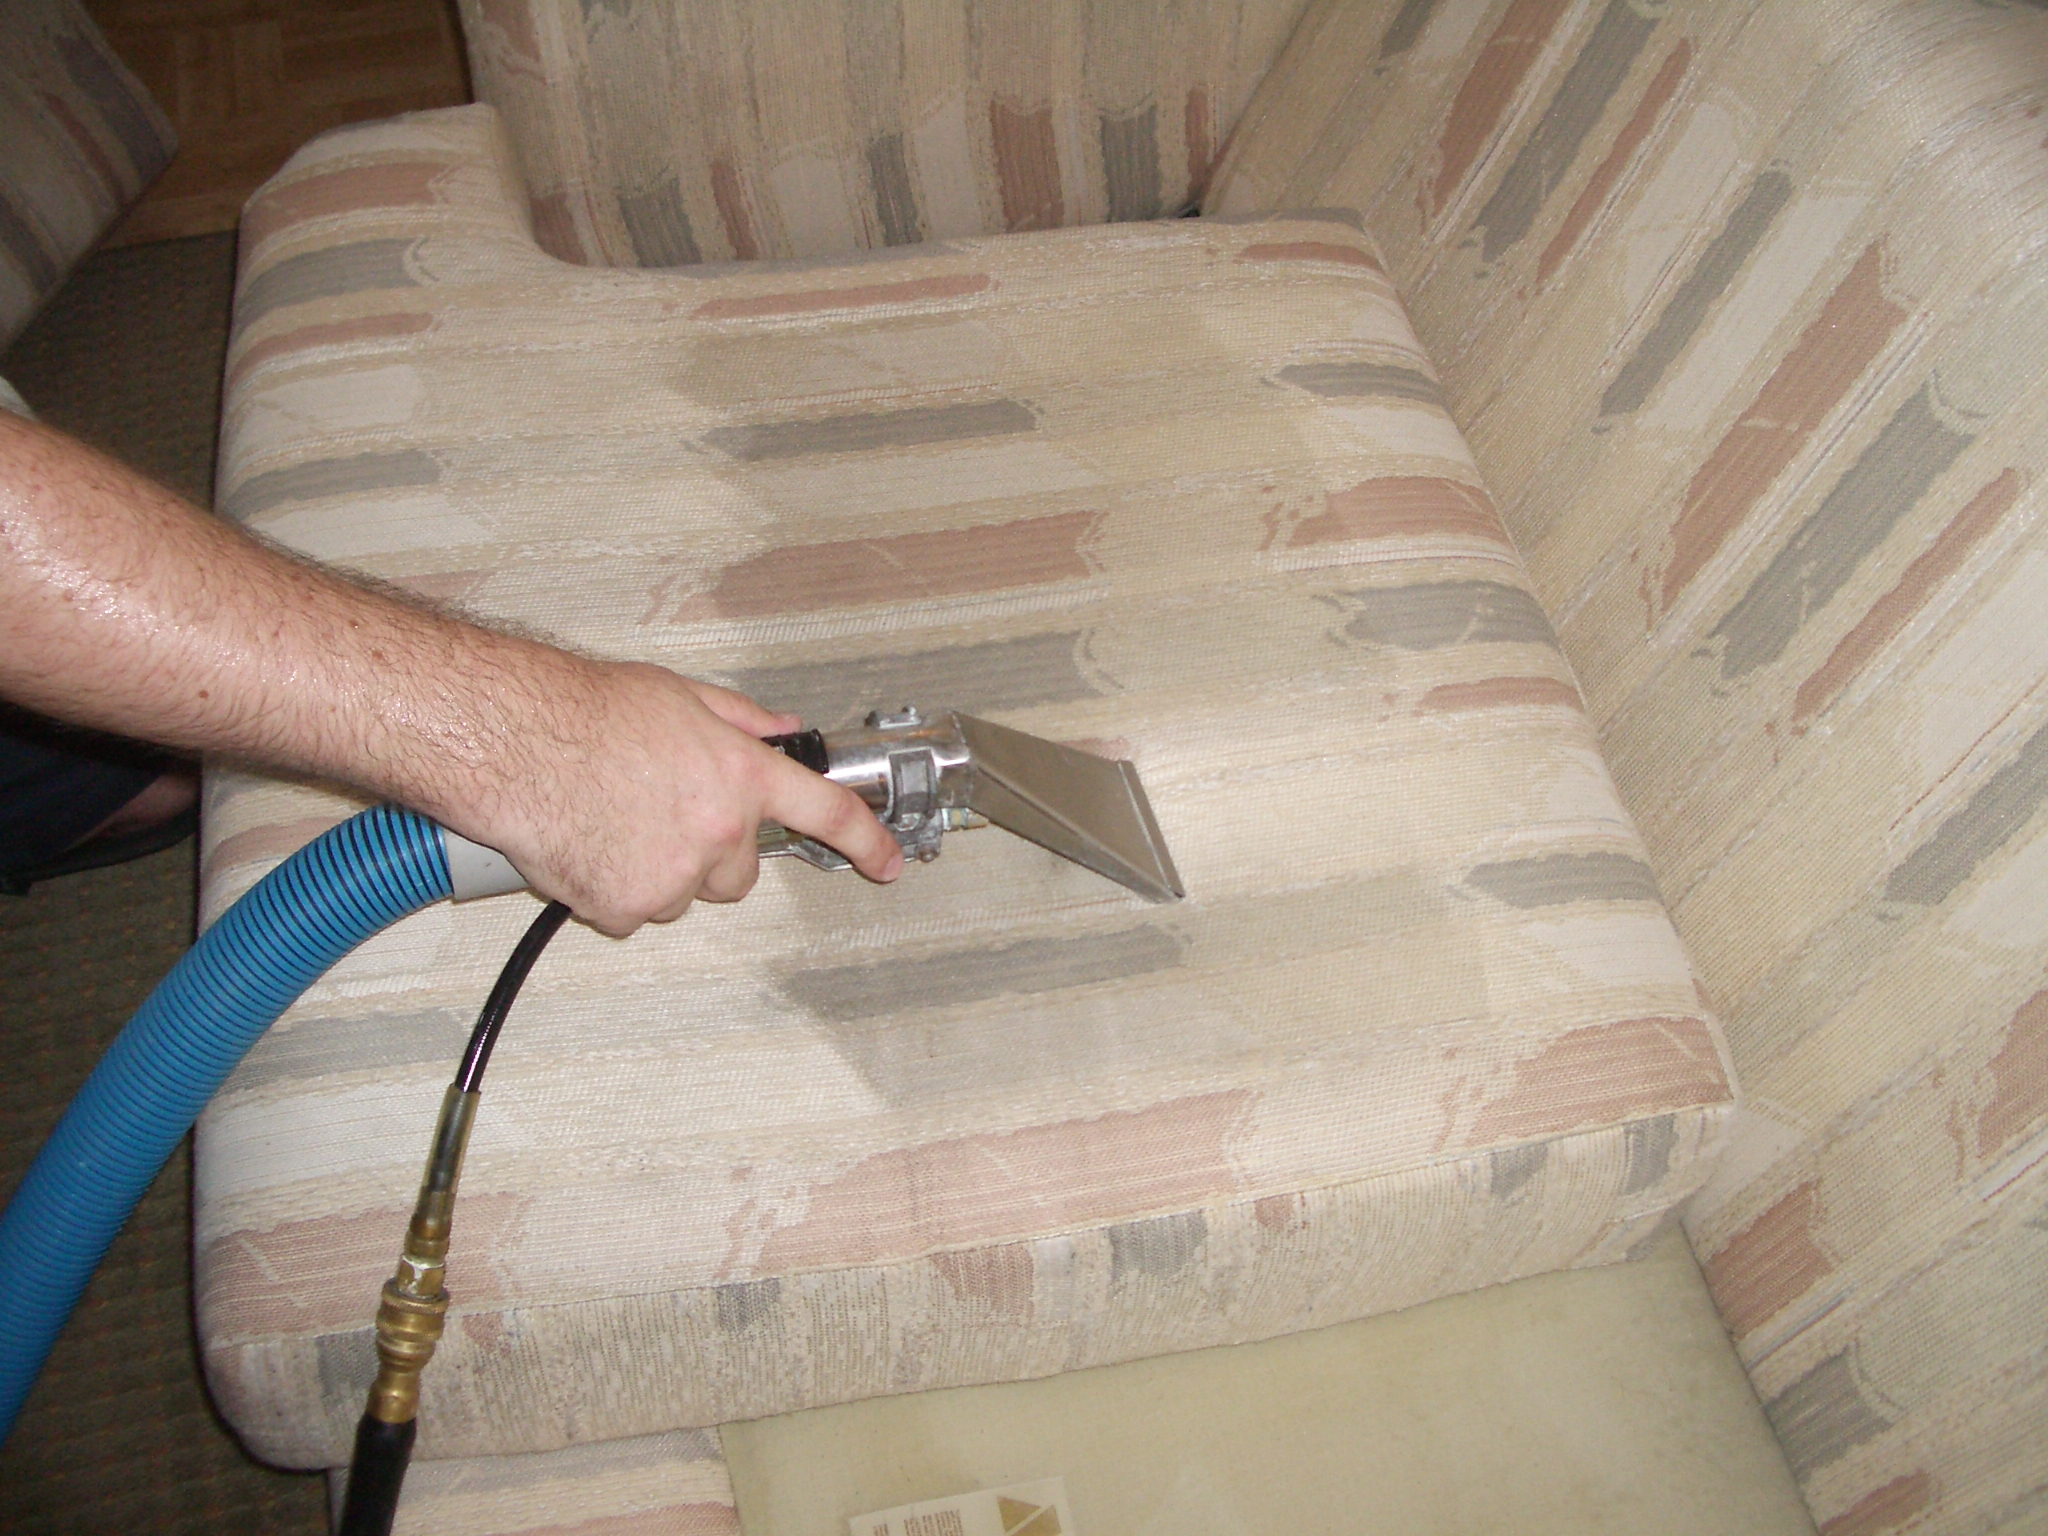 Upholstery Cleaning Melbourne 1300 309 913